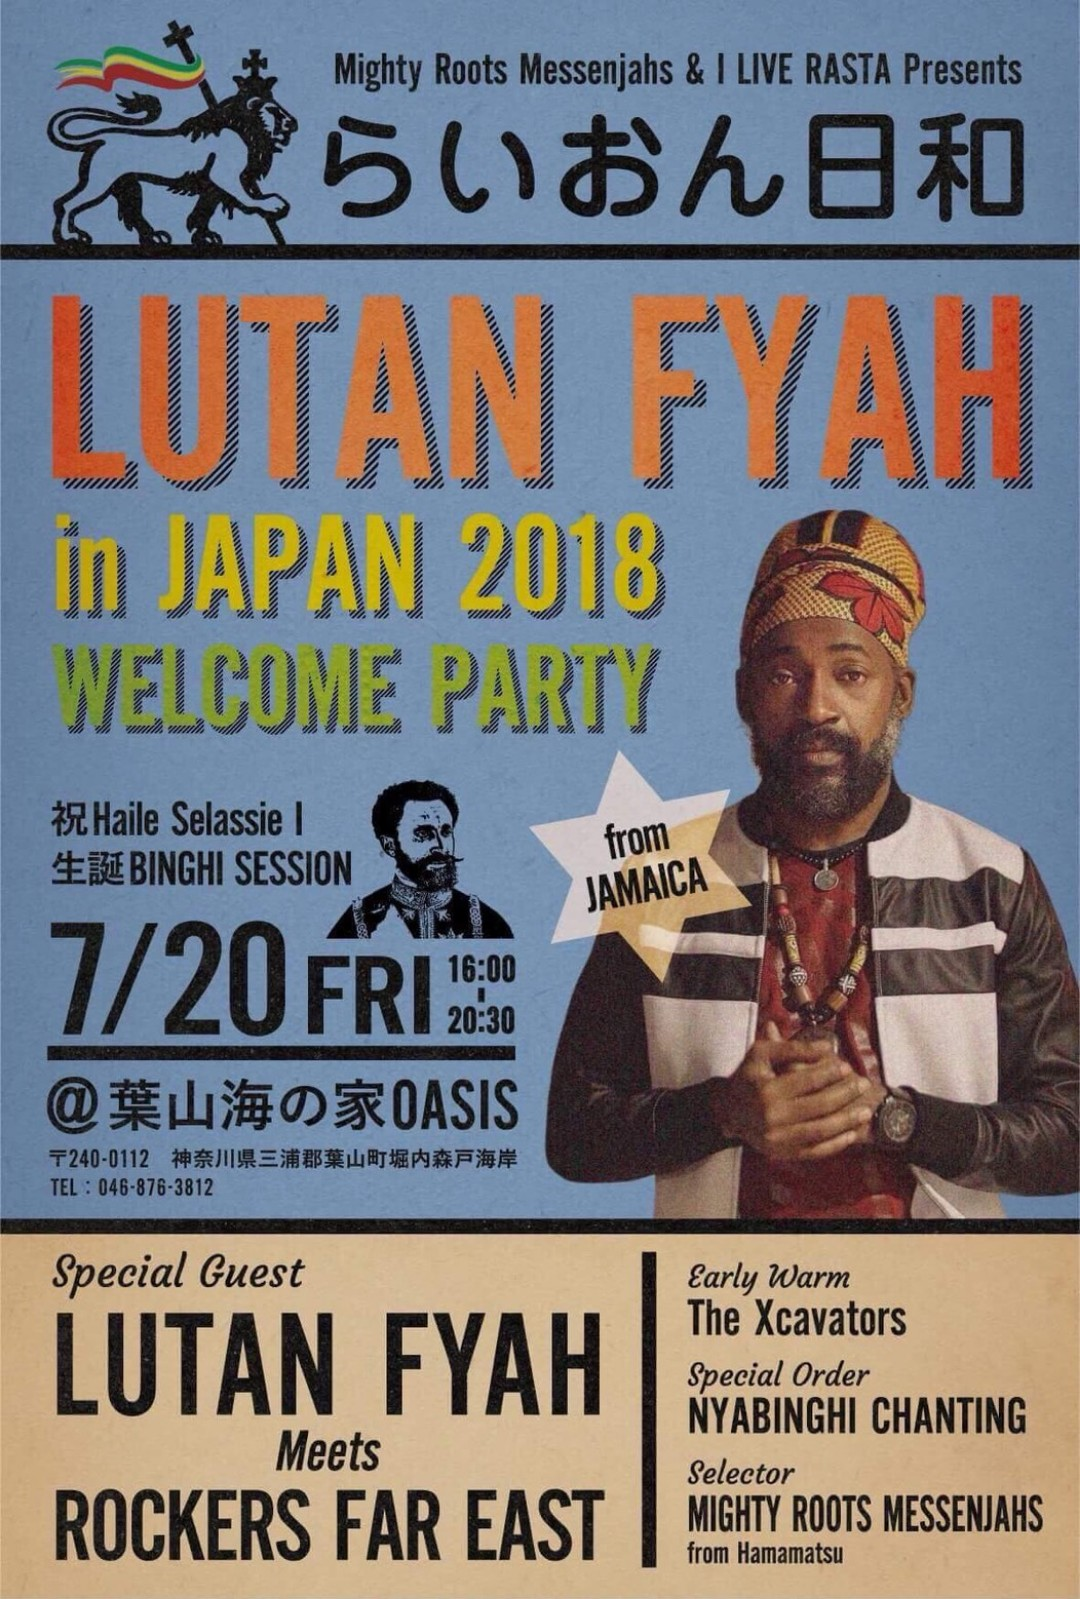 ライオン日和 -LUTAN FYAH in JAPAN 2018 WELCOME PARTY-